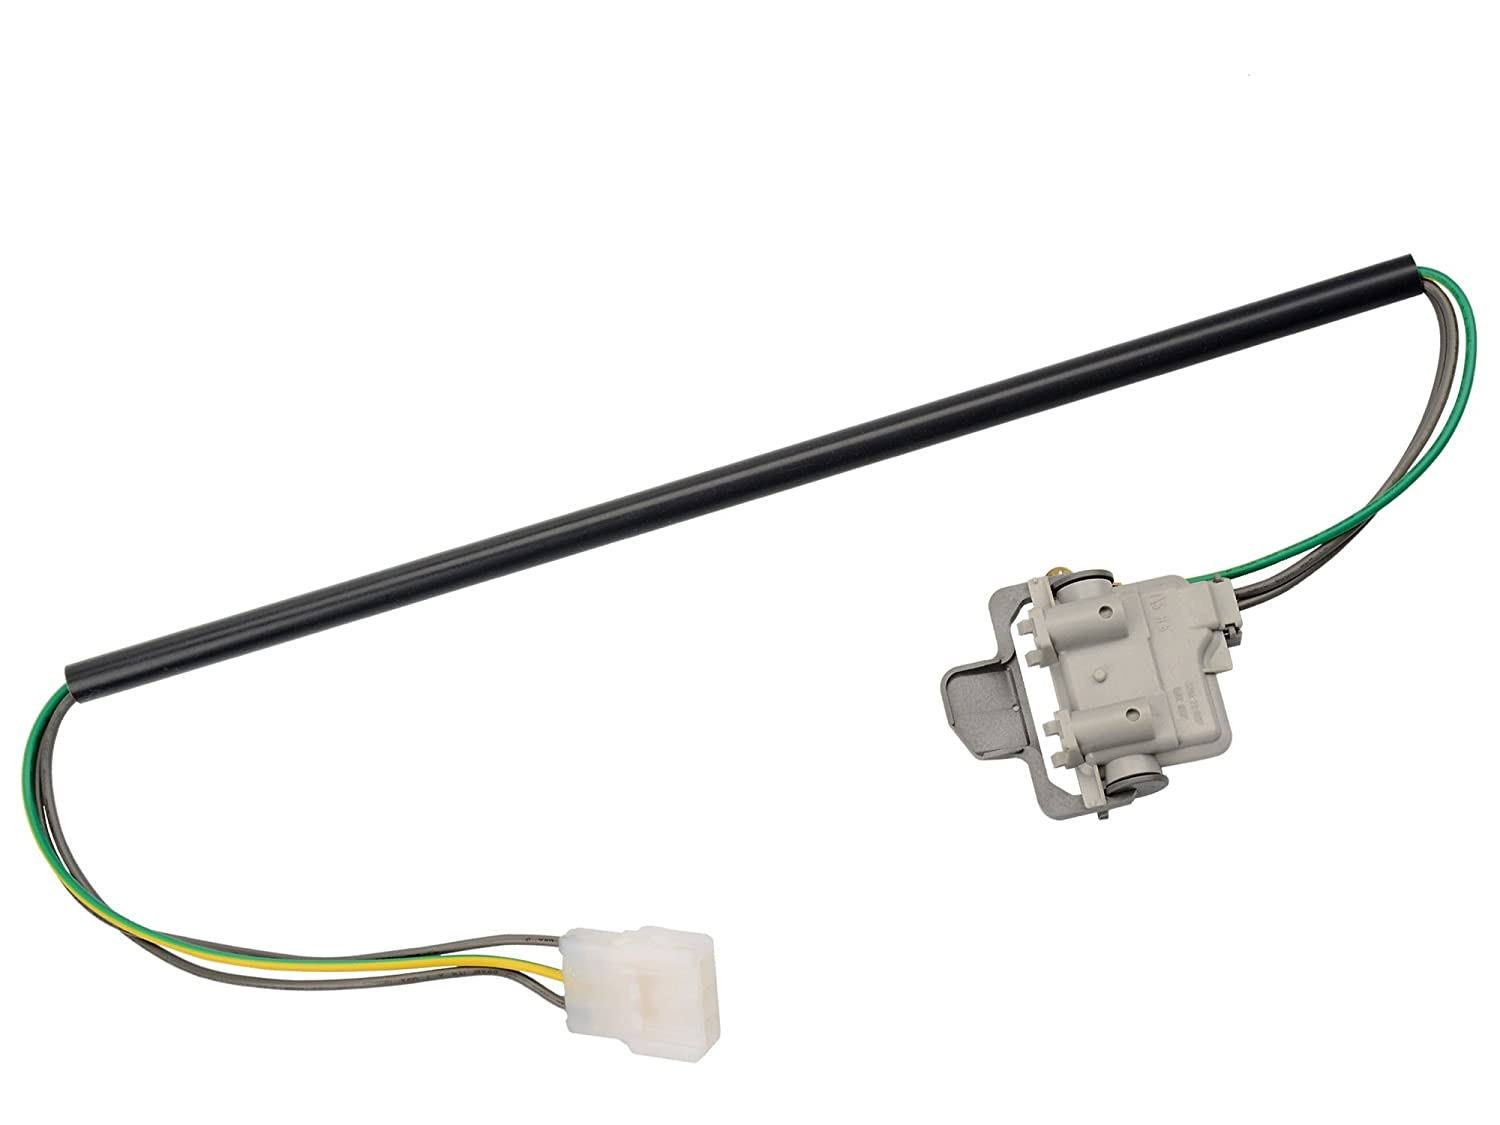 3949247 Washer Lid Switch Fits for Whirlpool Estate Roper Kenmore Washer PS11722098 AP3100003 PS350434 Washing Machine Models.